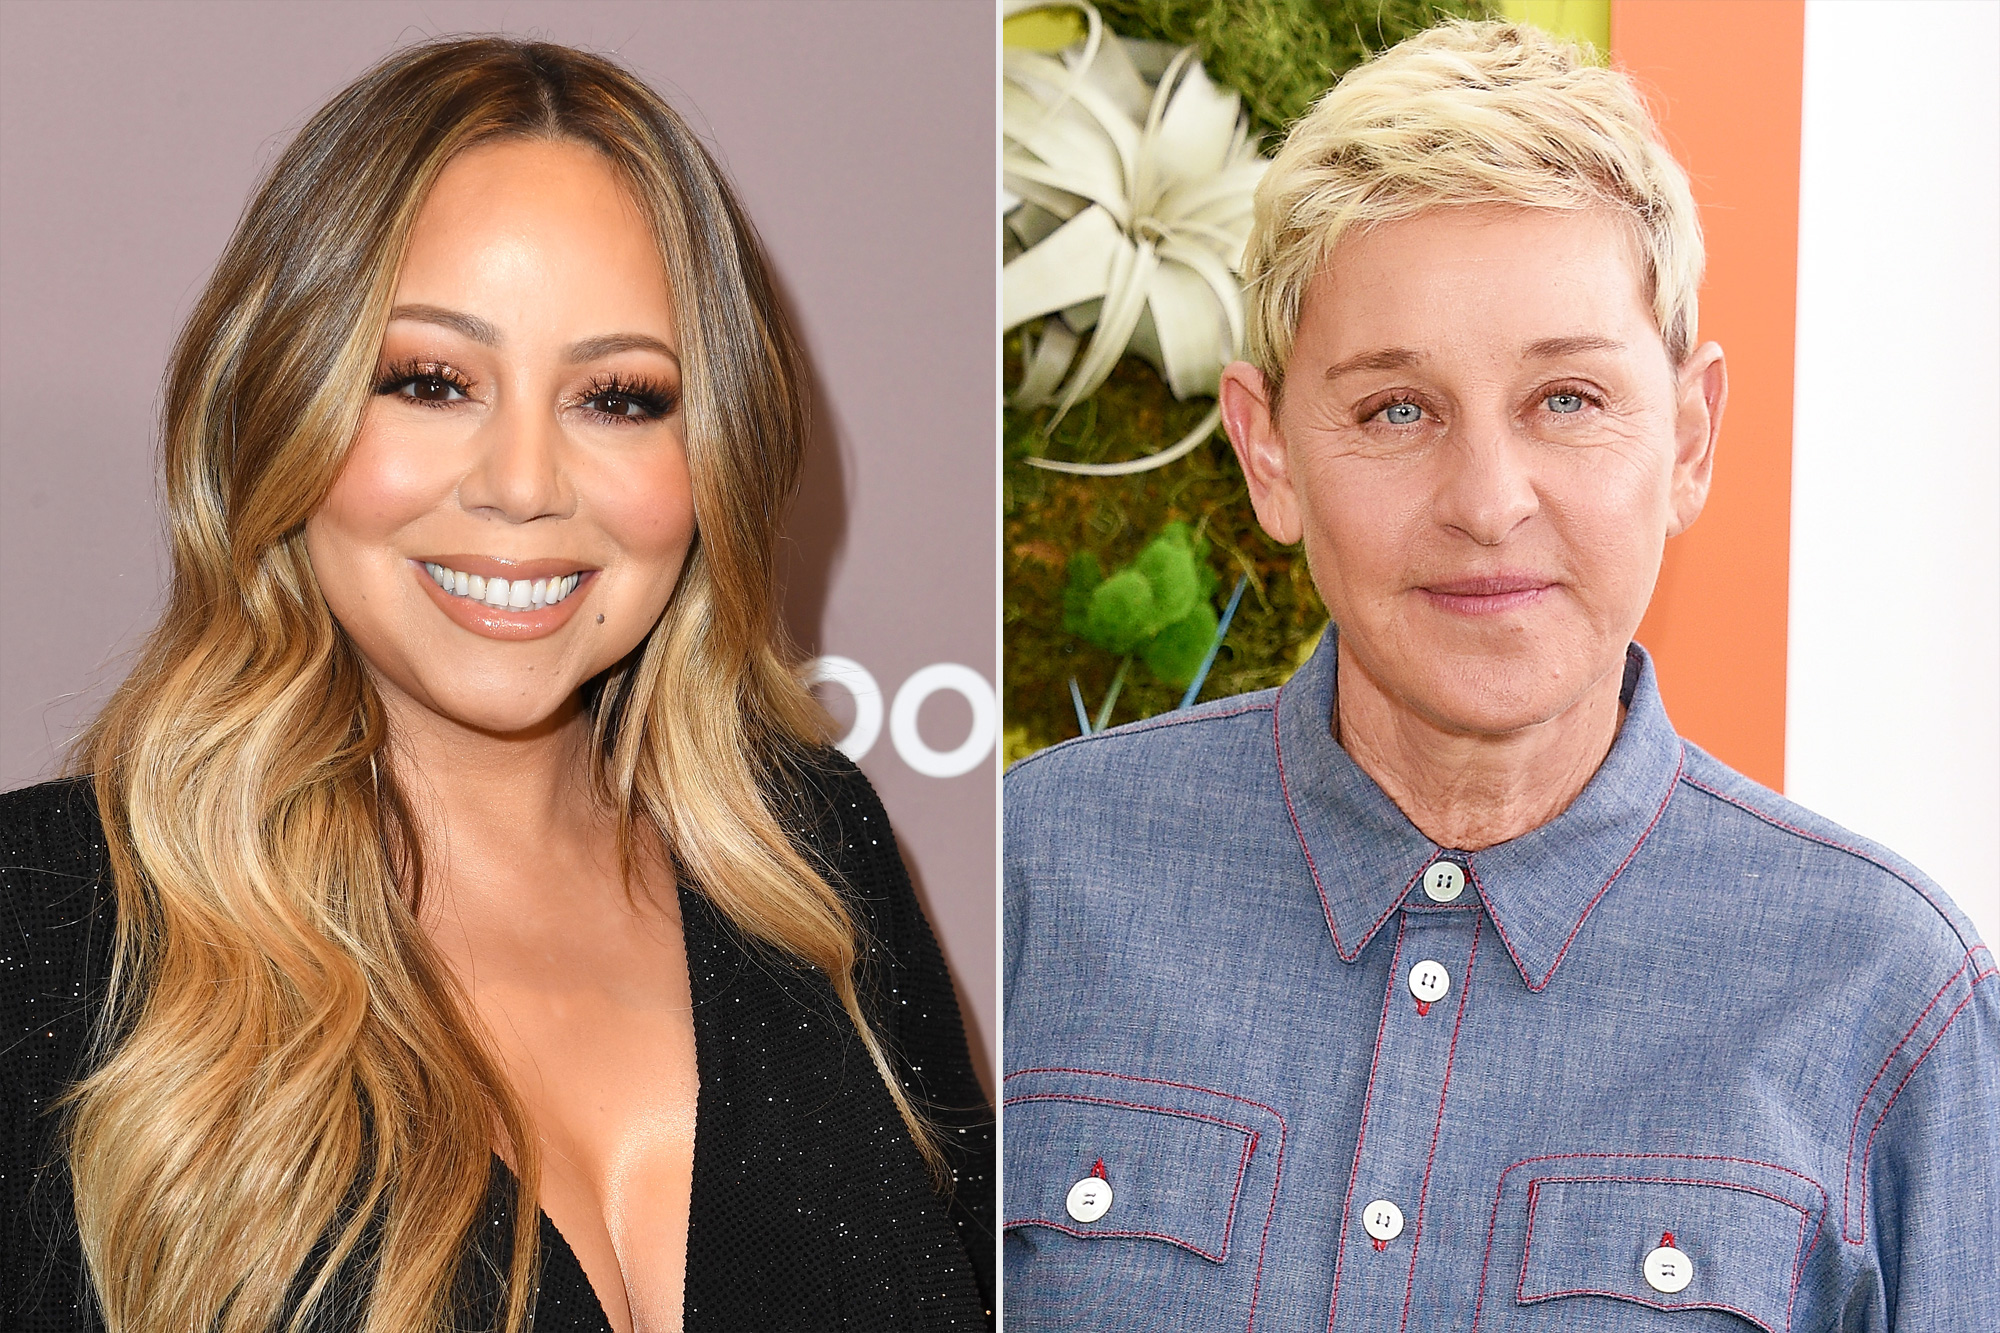 Mariah Carey Was 'Extremely Uncomfortable' When Pregnancy Was Outed During 2008 Ellen DeGeneres Interview